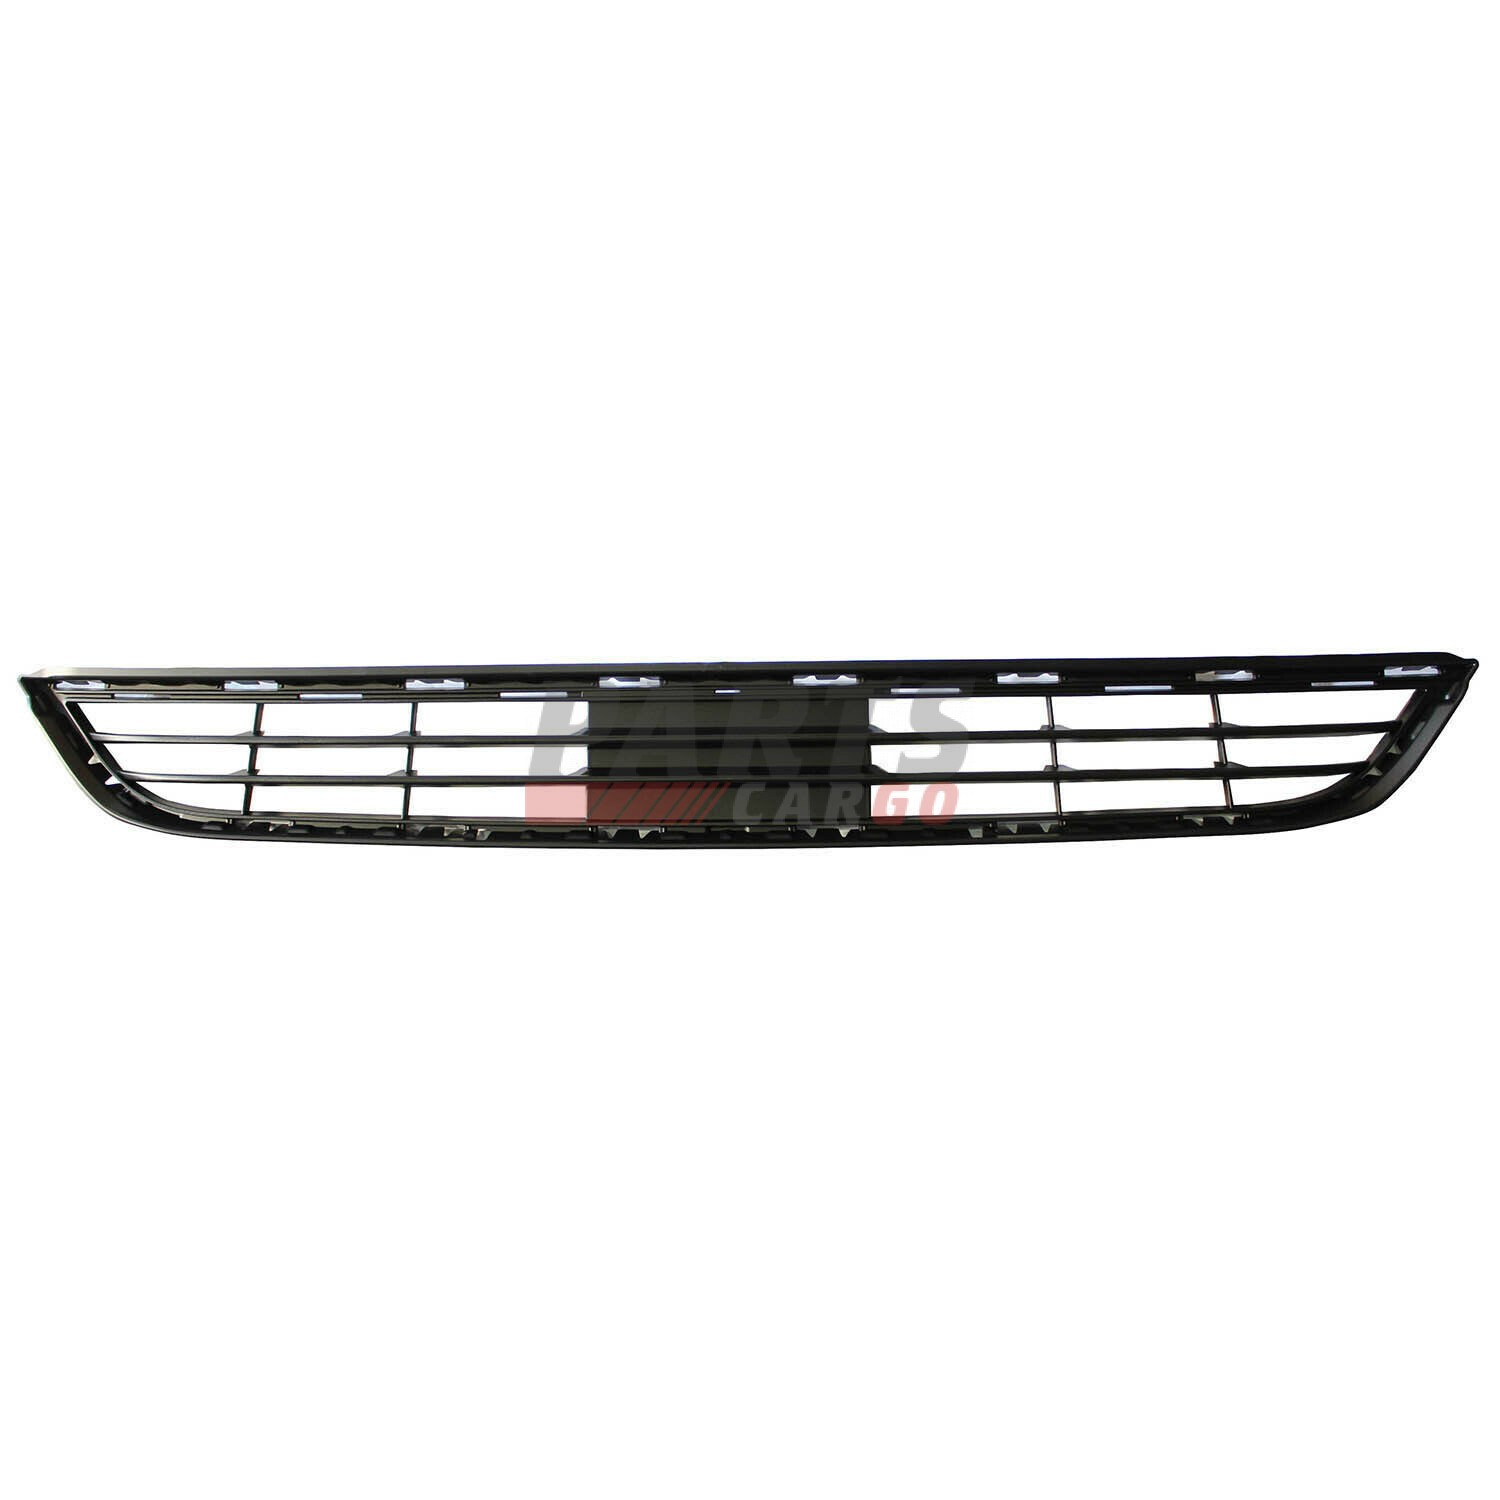 NEW FRONT LOWER BUMPER COVER GRILLE FITS 2015-2017 BMW X3